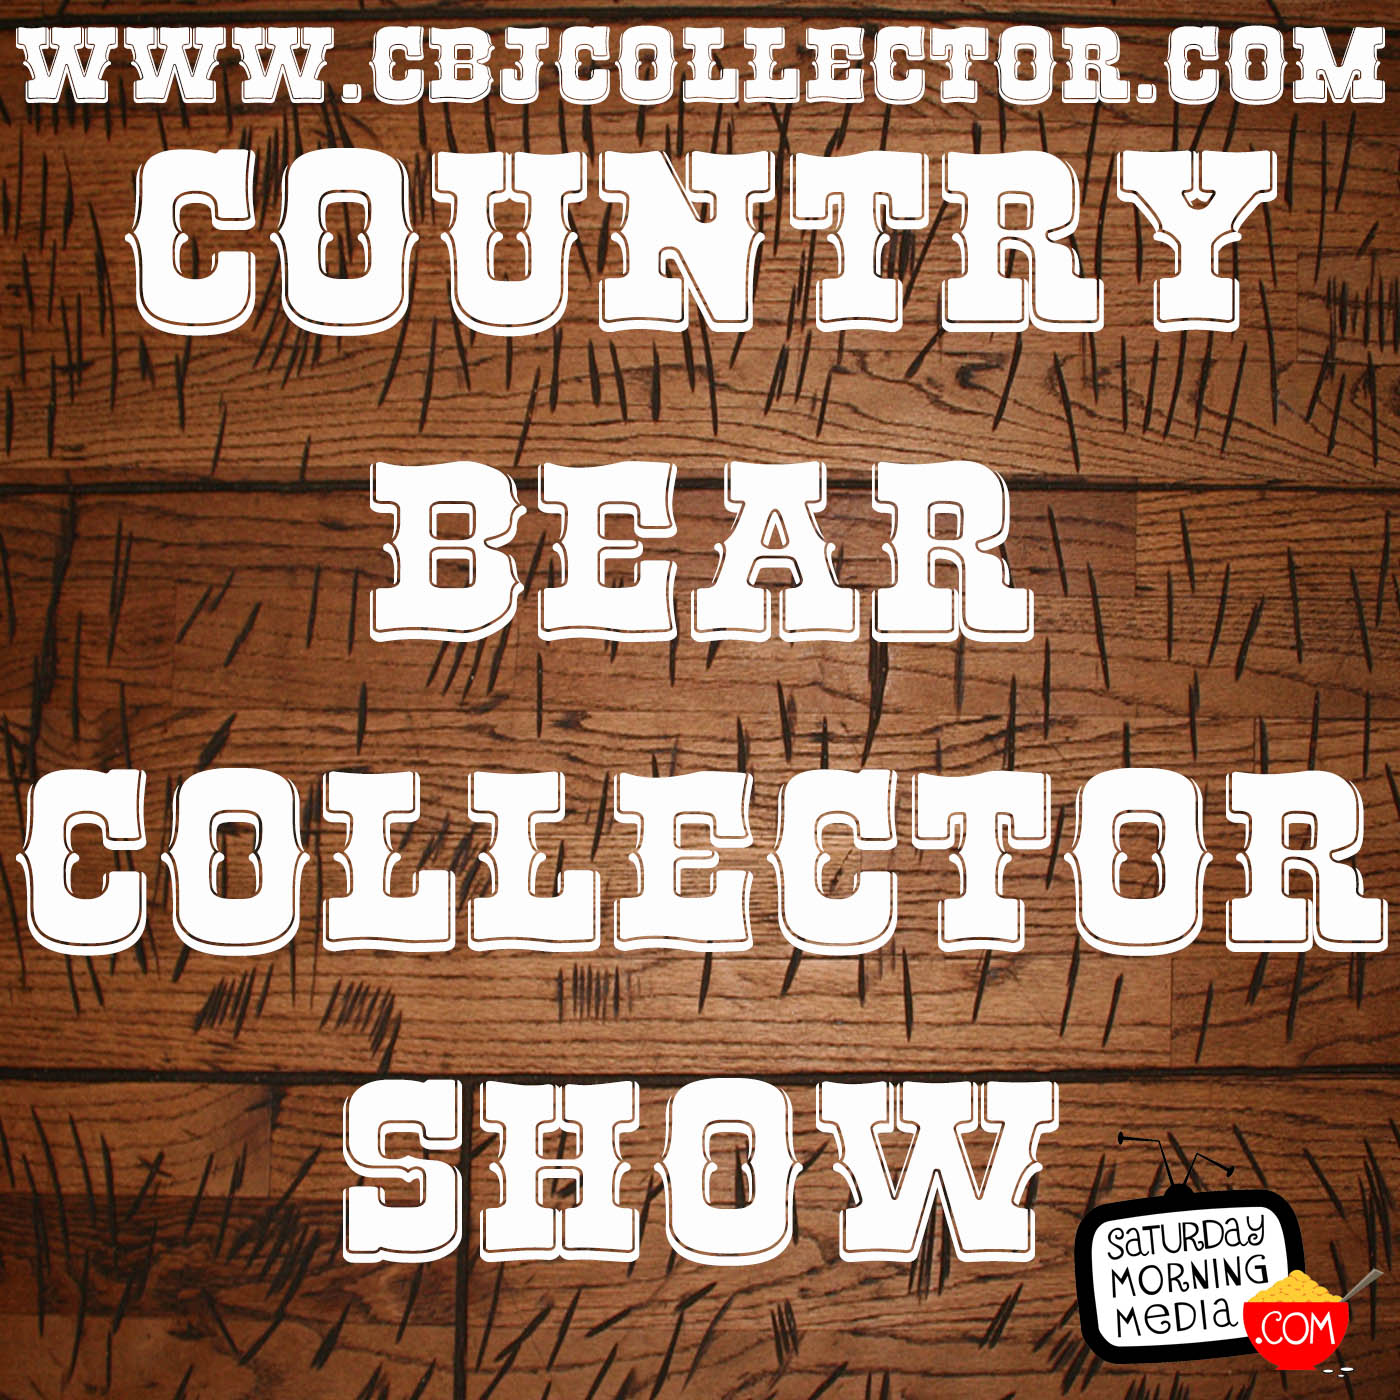 Artwork for 2013 Disney Imagineering Limited Edition Henry Pin - Country Bear Collector Show #179